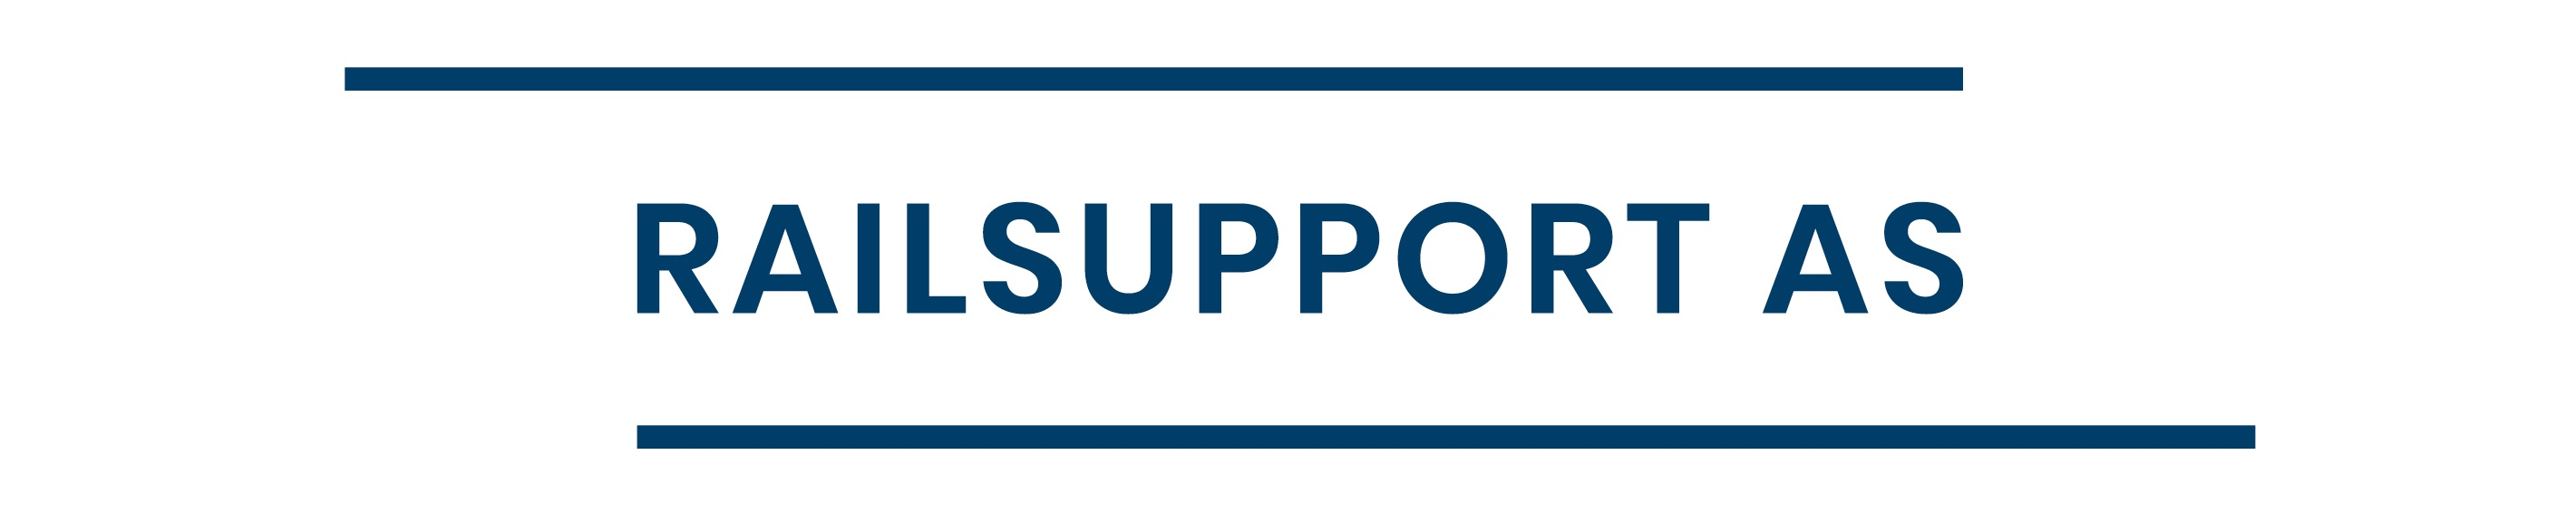 RAILSUPPORT AS